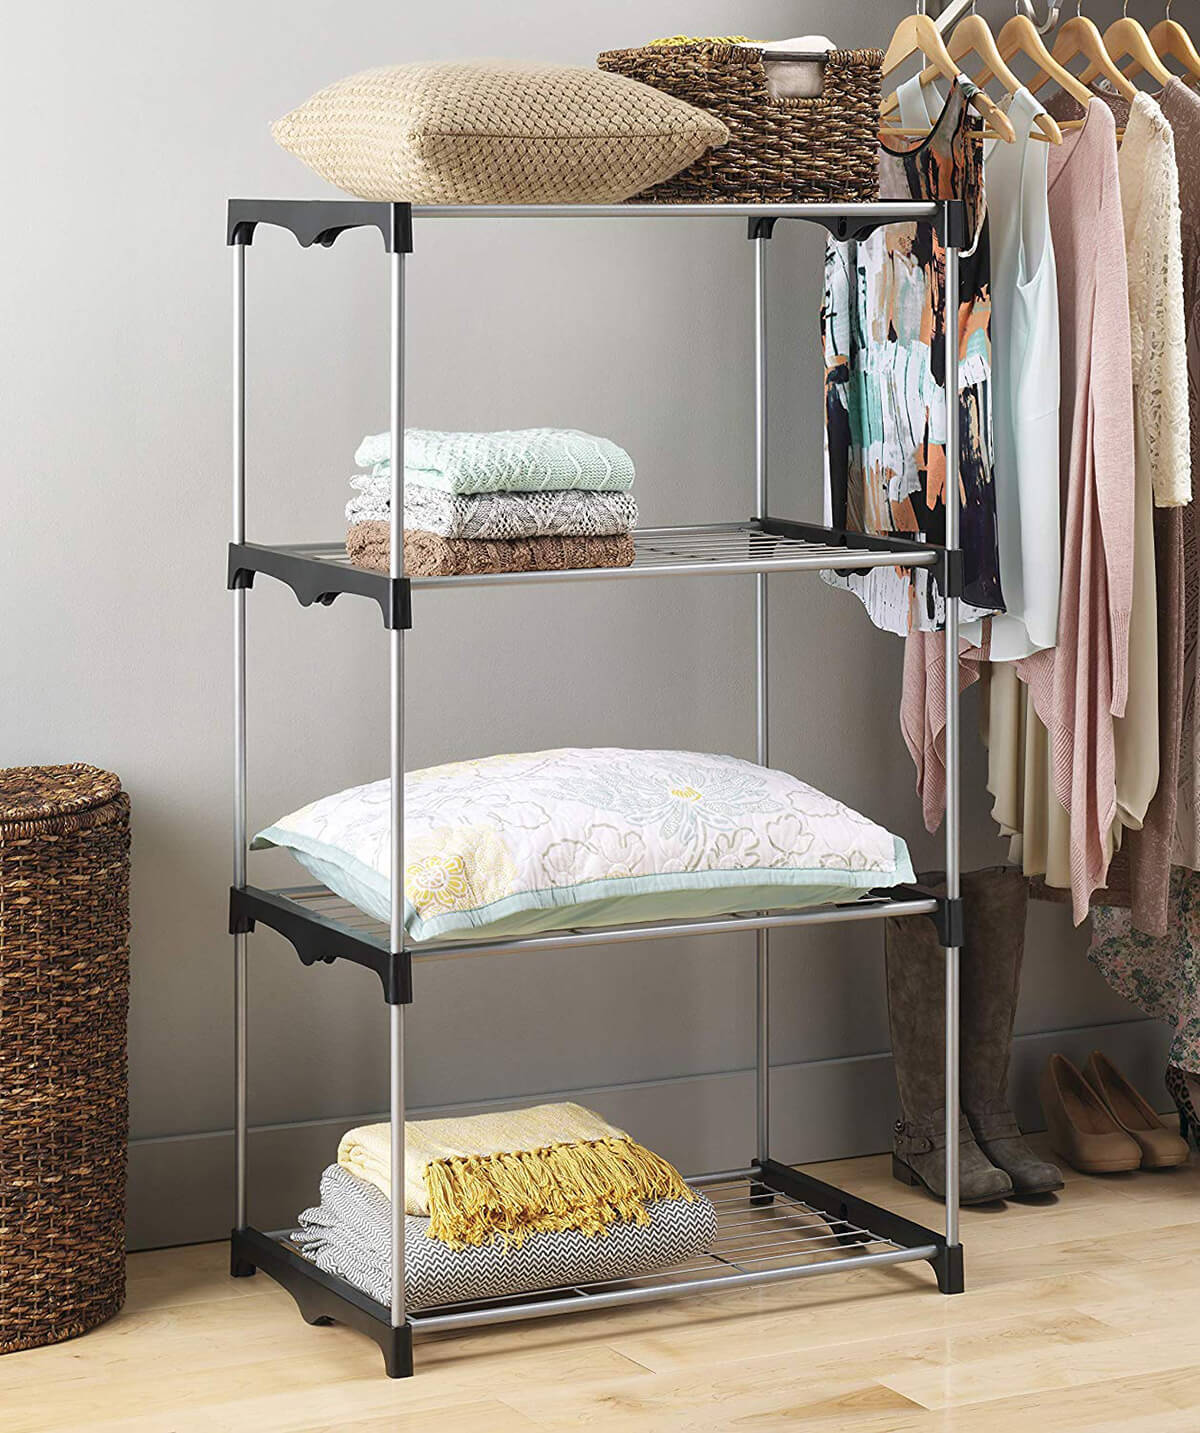 Space-Saving Slim Metal Shelves